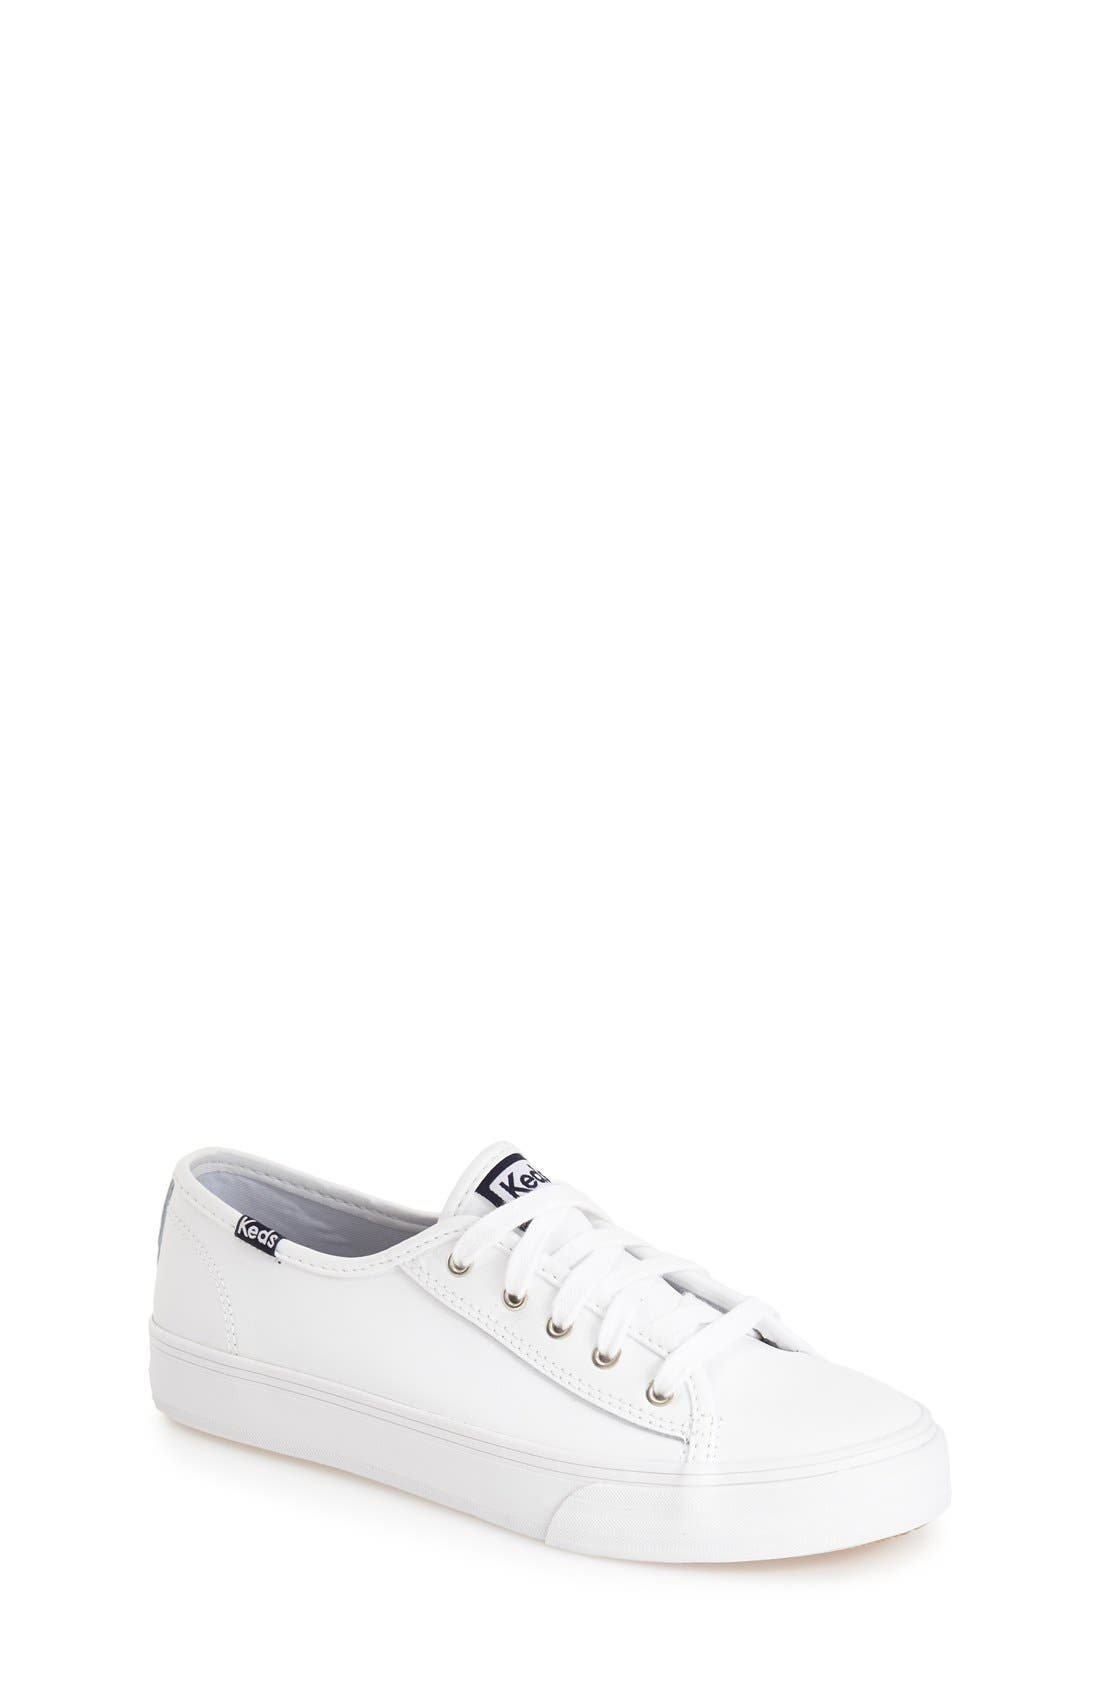 KEDS® 'Double Up' Sneaker